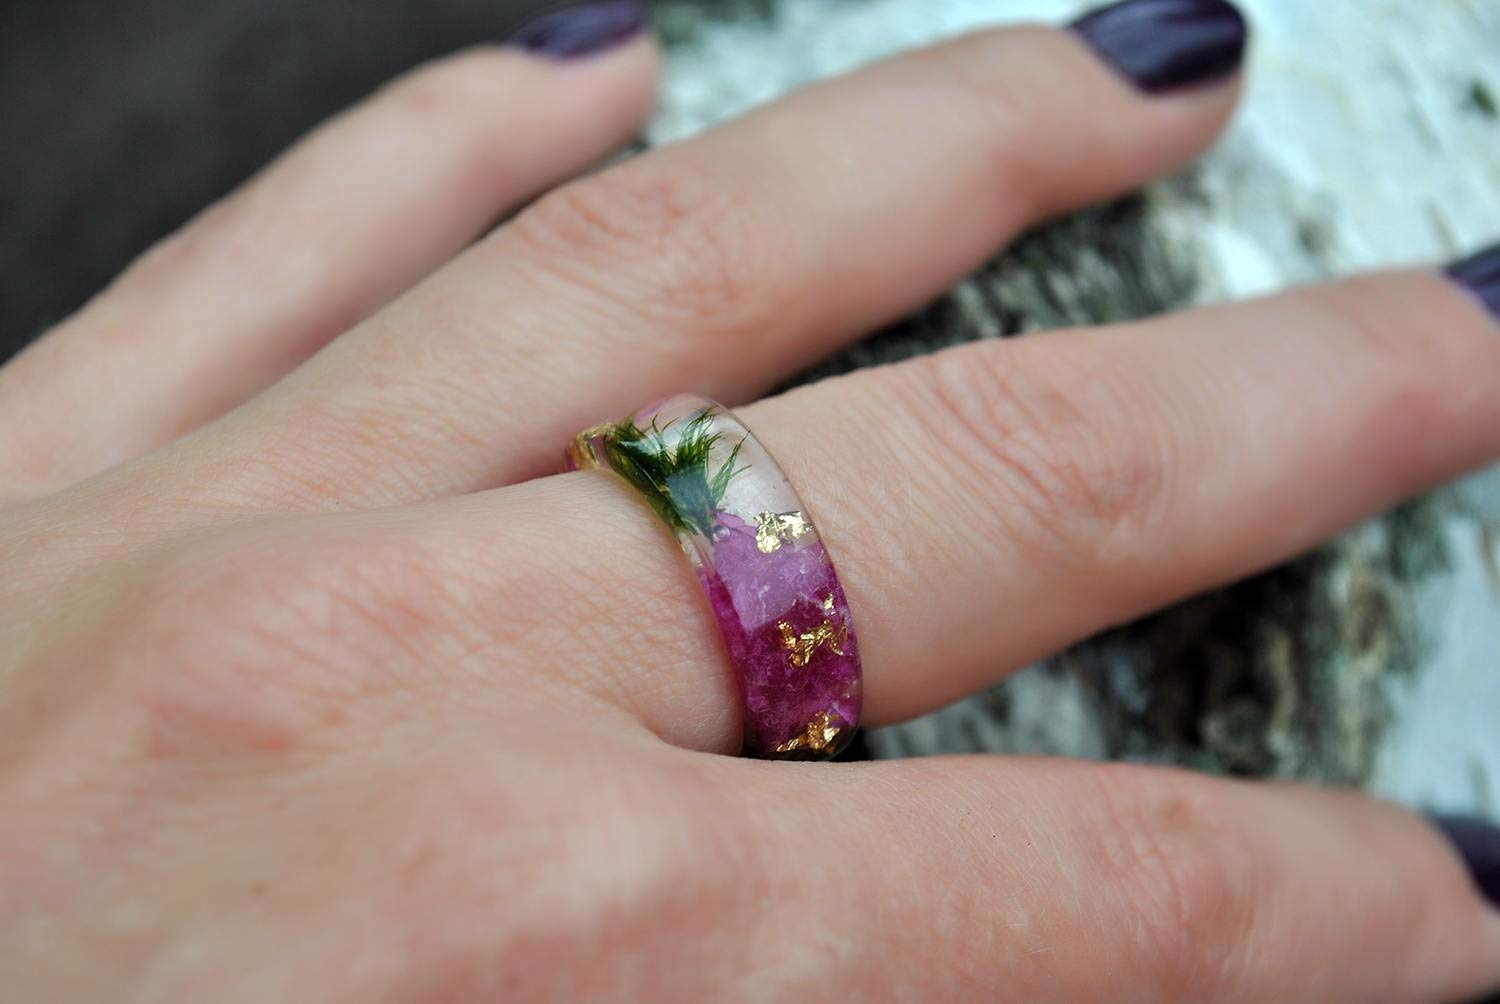 Amazon Com Eco Resin Ring Band With Natural Pressed Orchid Petals And Gold Flakes And Nature Moss Handmade